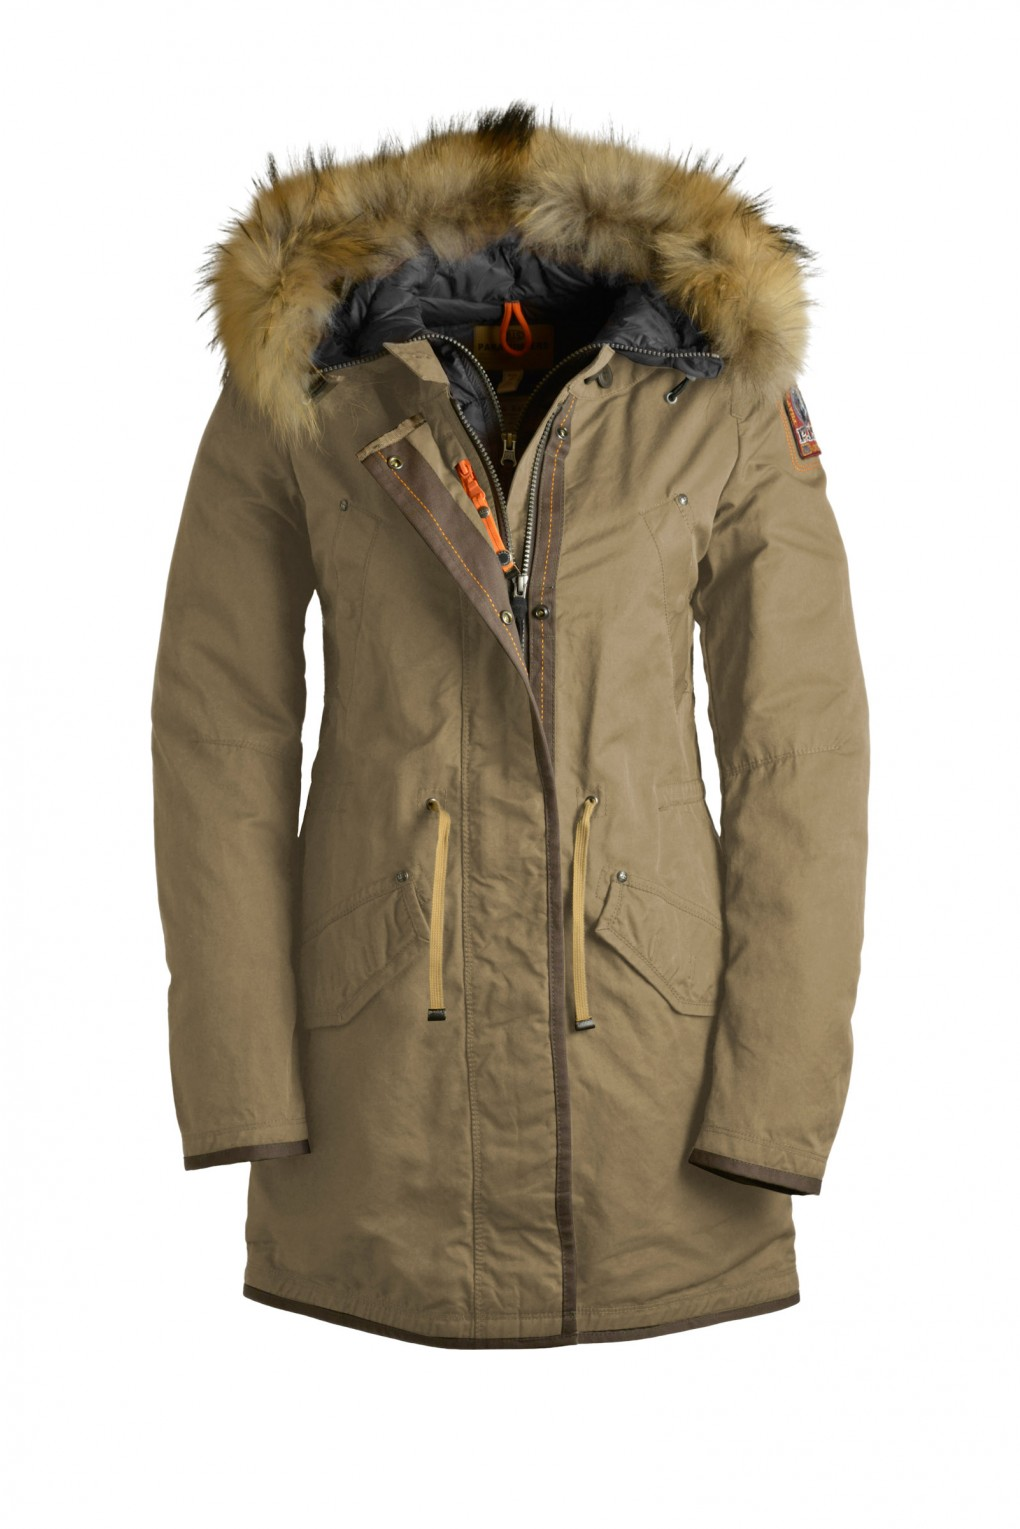 parajumpers MARILYN woman outerwear Sand